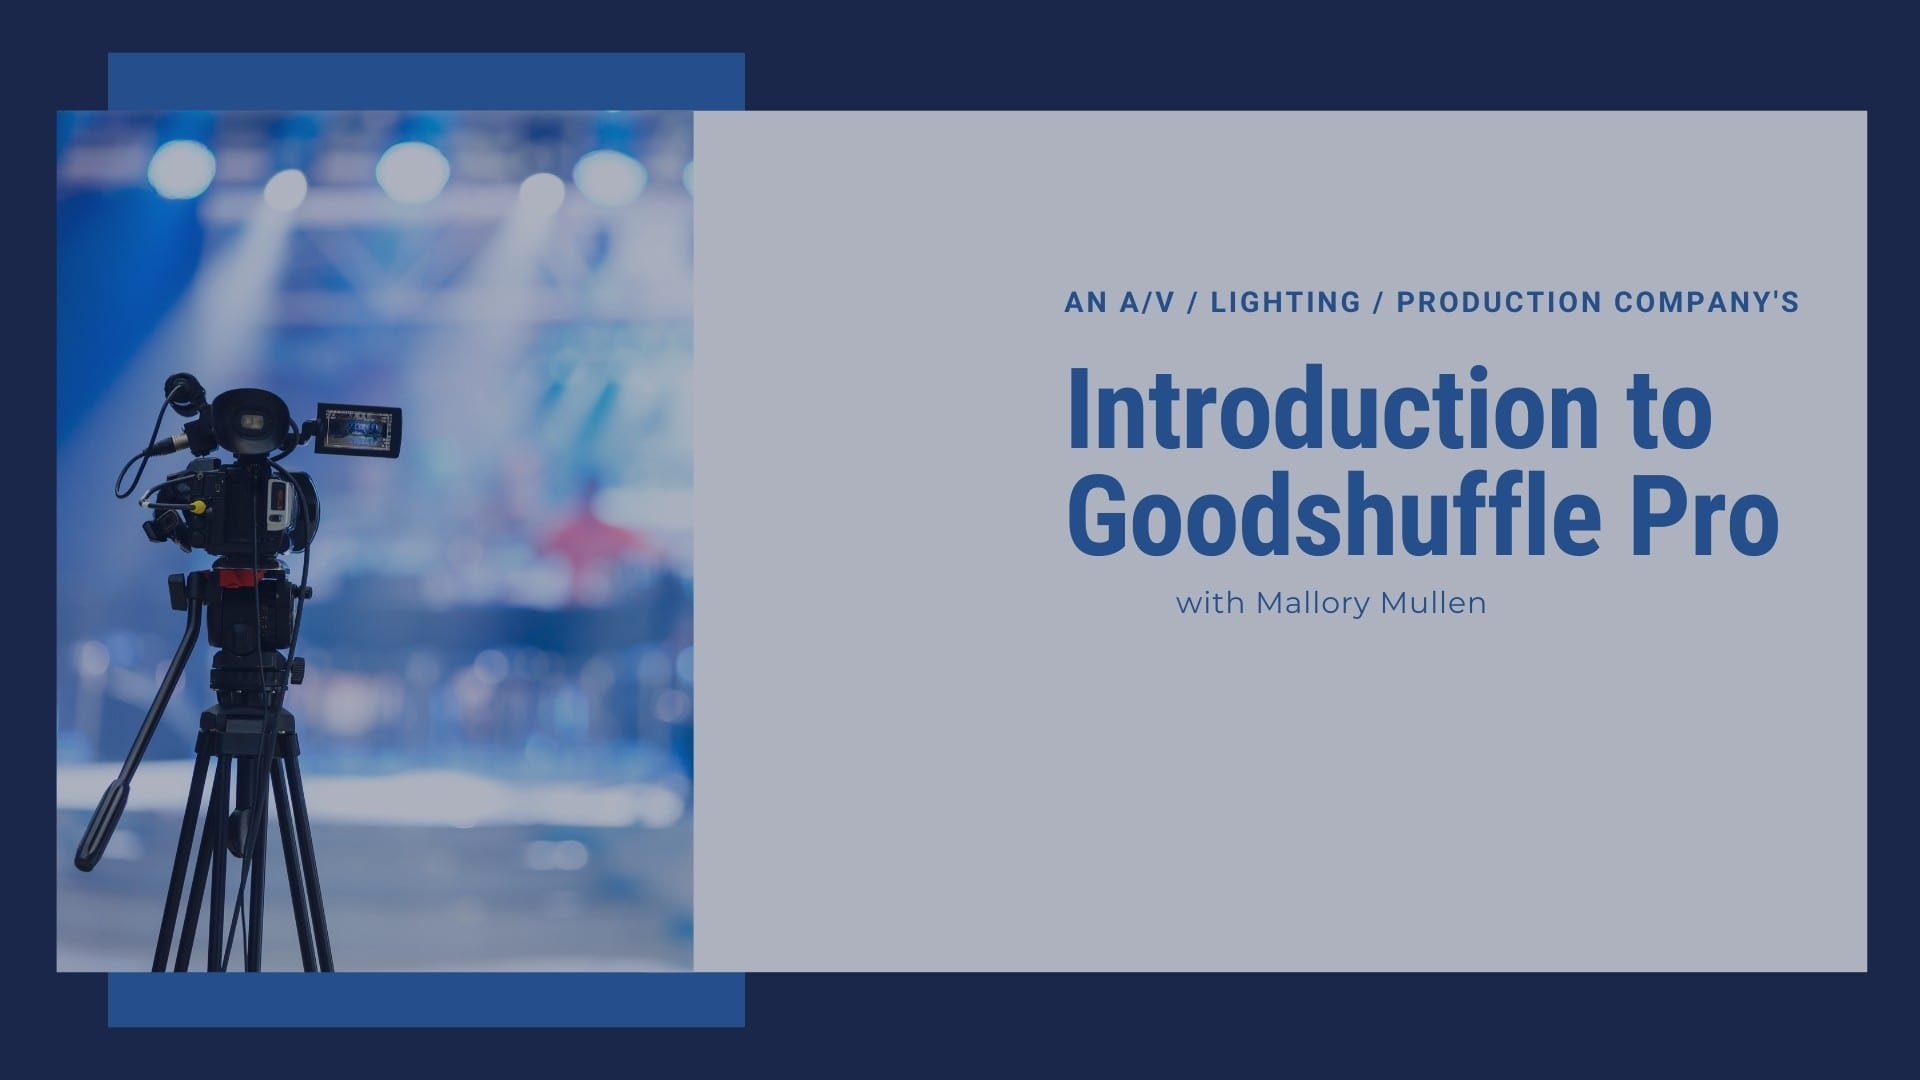 Introduction to Goodshuffle Pro for event lighting and production companies